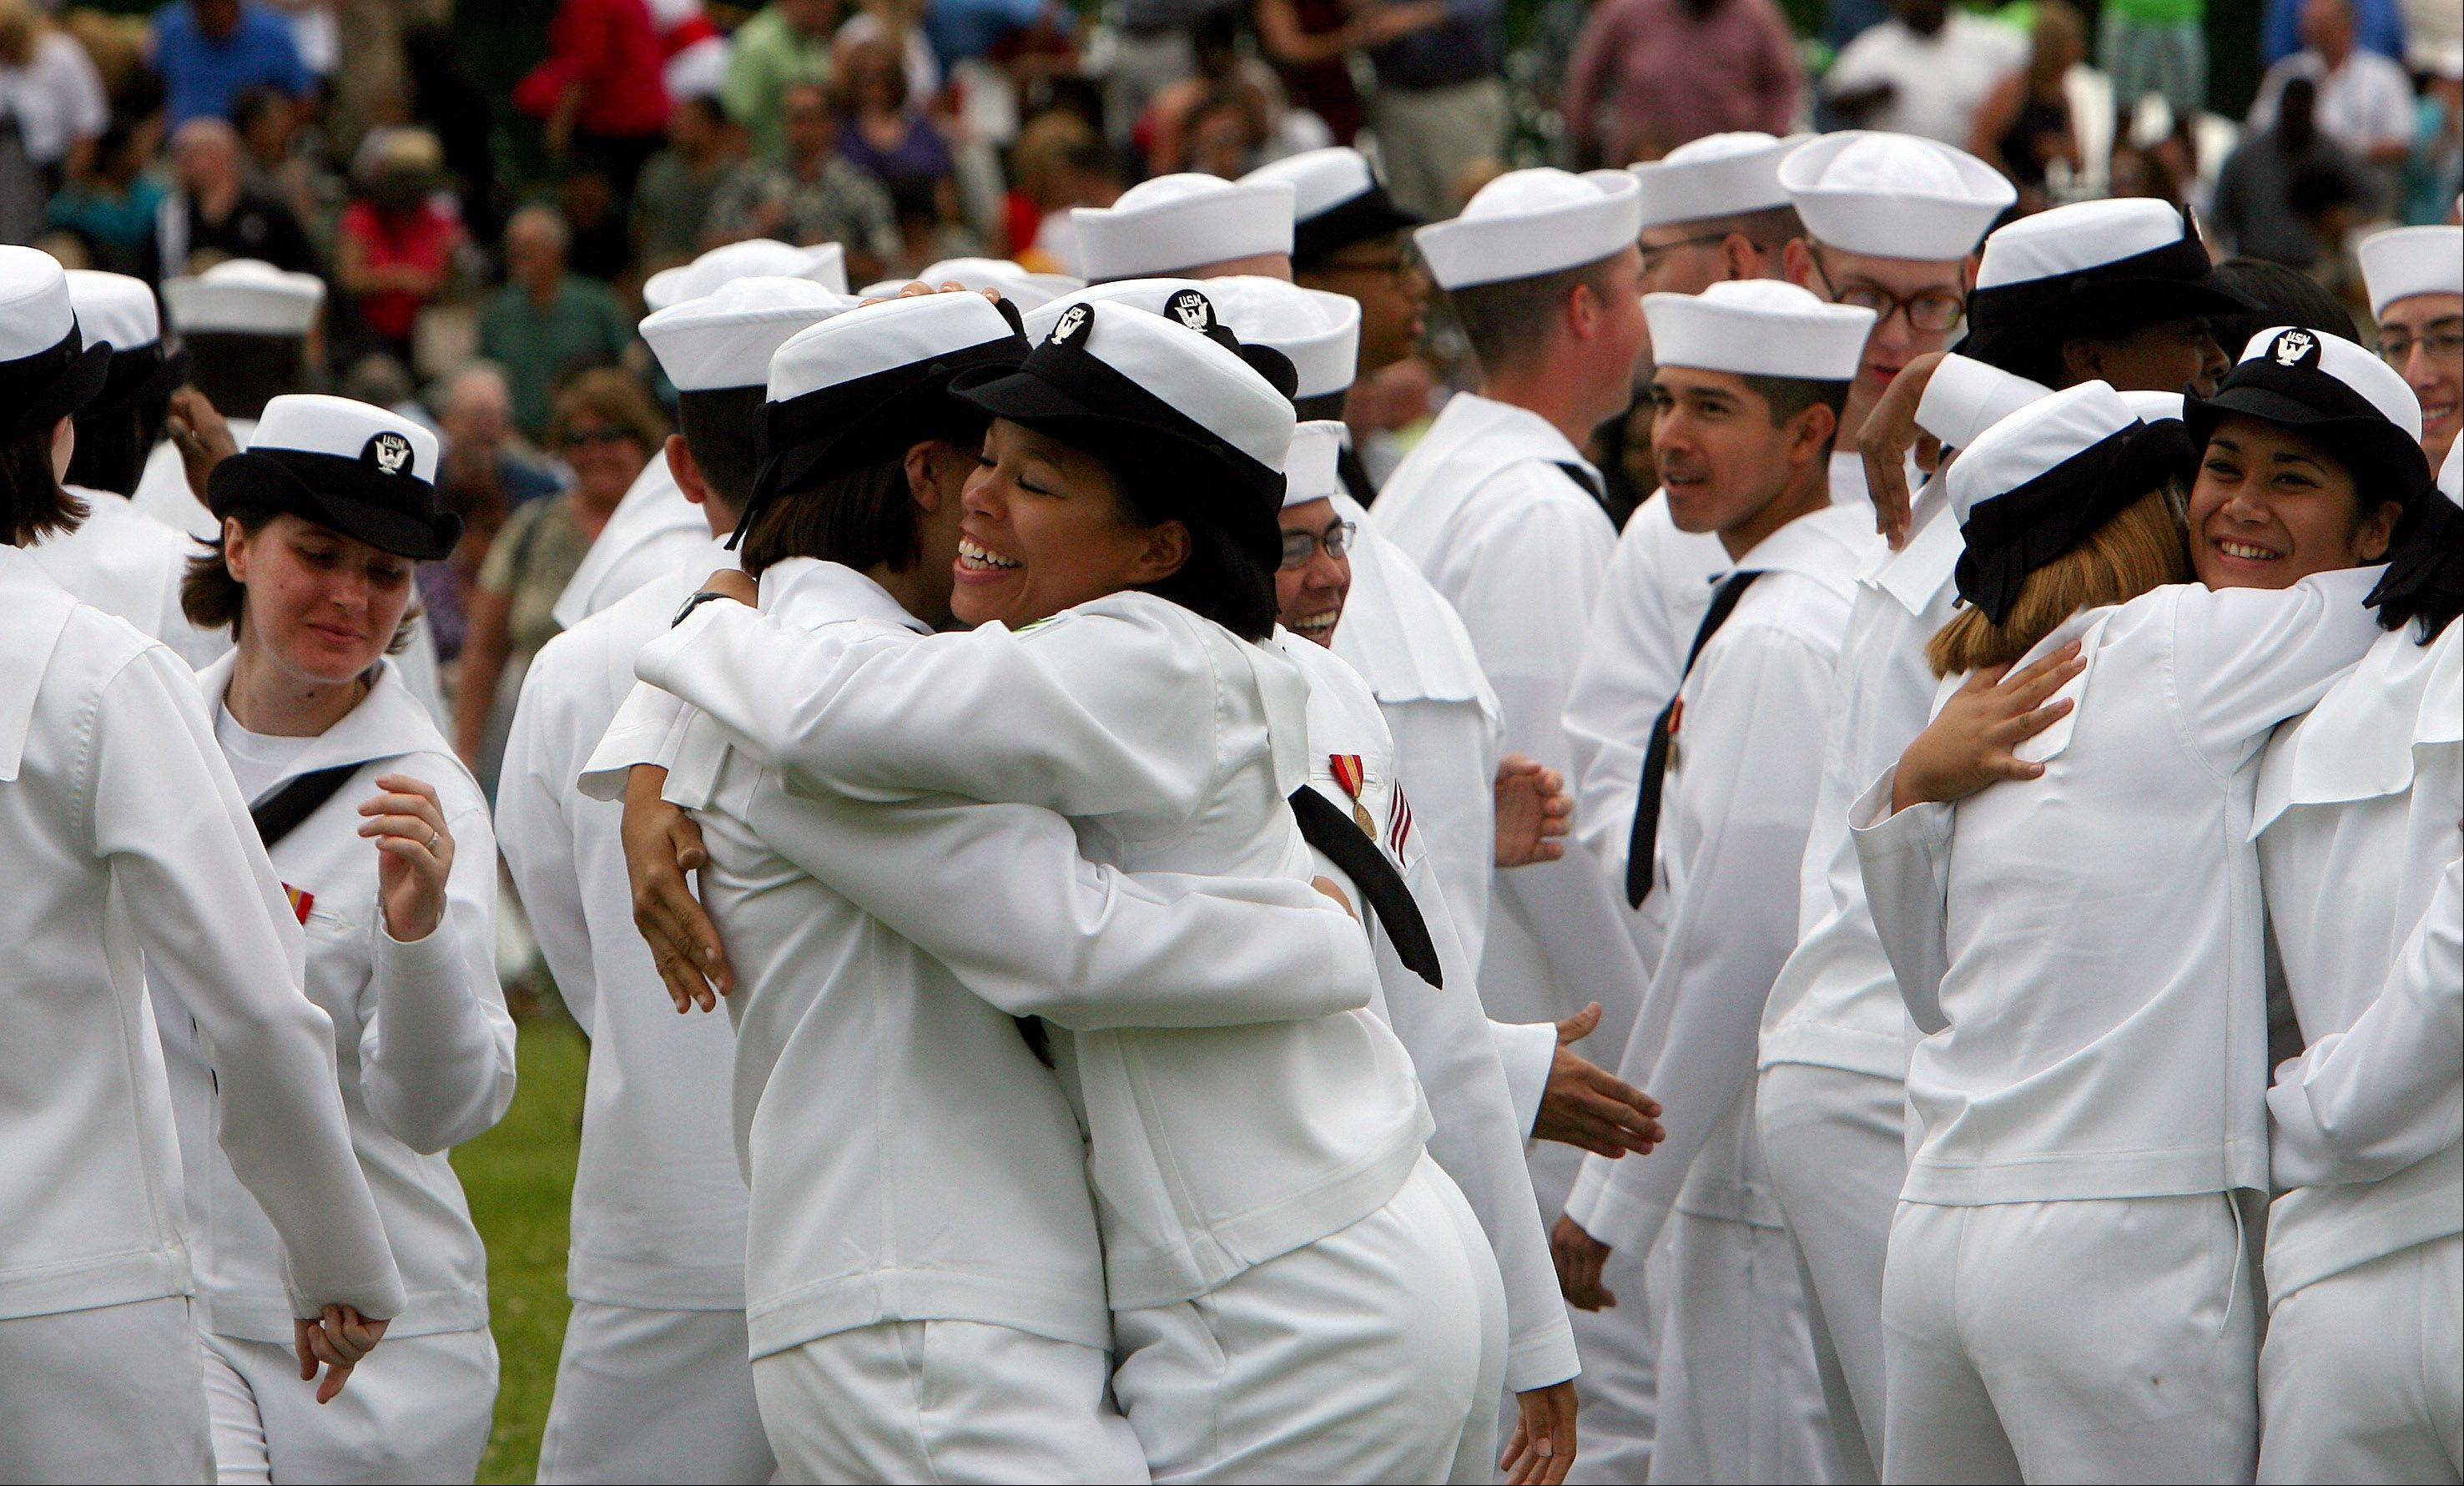 Former recruits, now sailors, embrace after graduation ceremonies at Great Lakes Naval Station Friday. About 1,000 recruits graduated on its 100th anniversary.